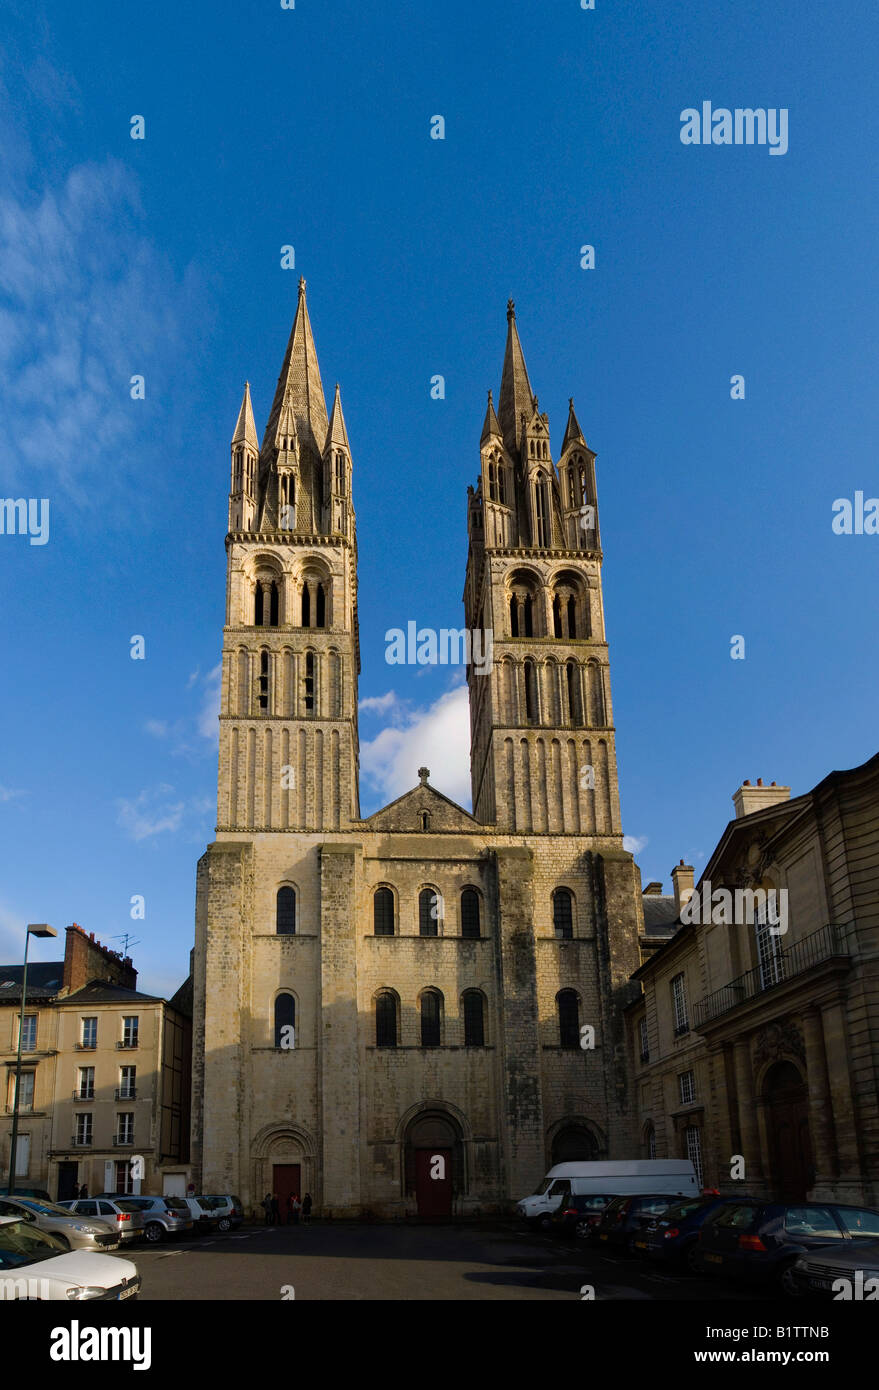 France Normandy city of caen Saint Etienne abbaye au hommes men's abbey - Stock Image